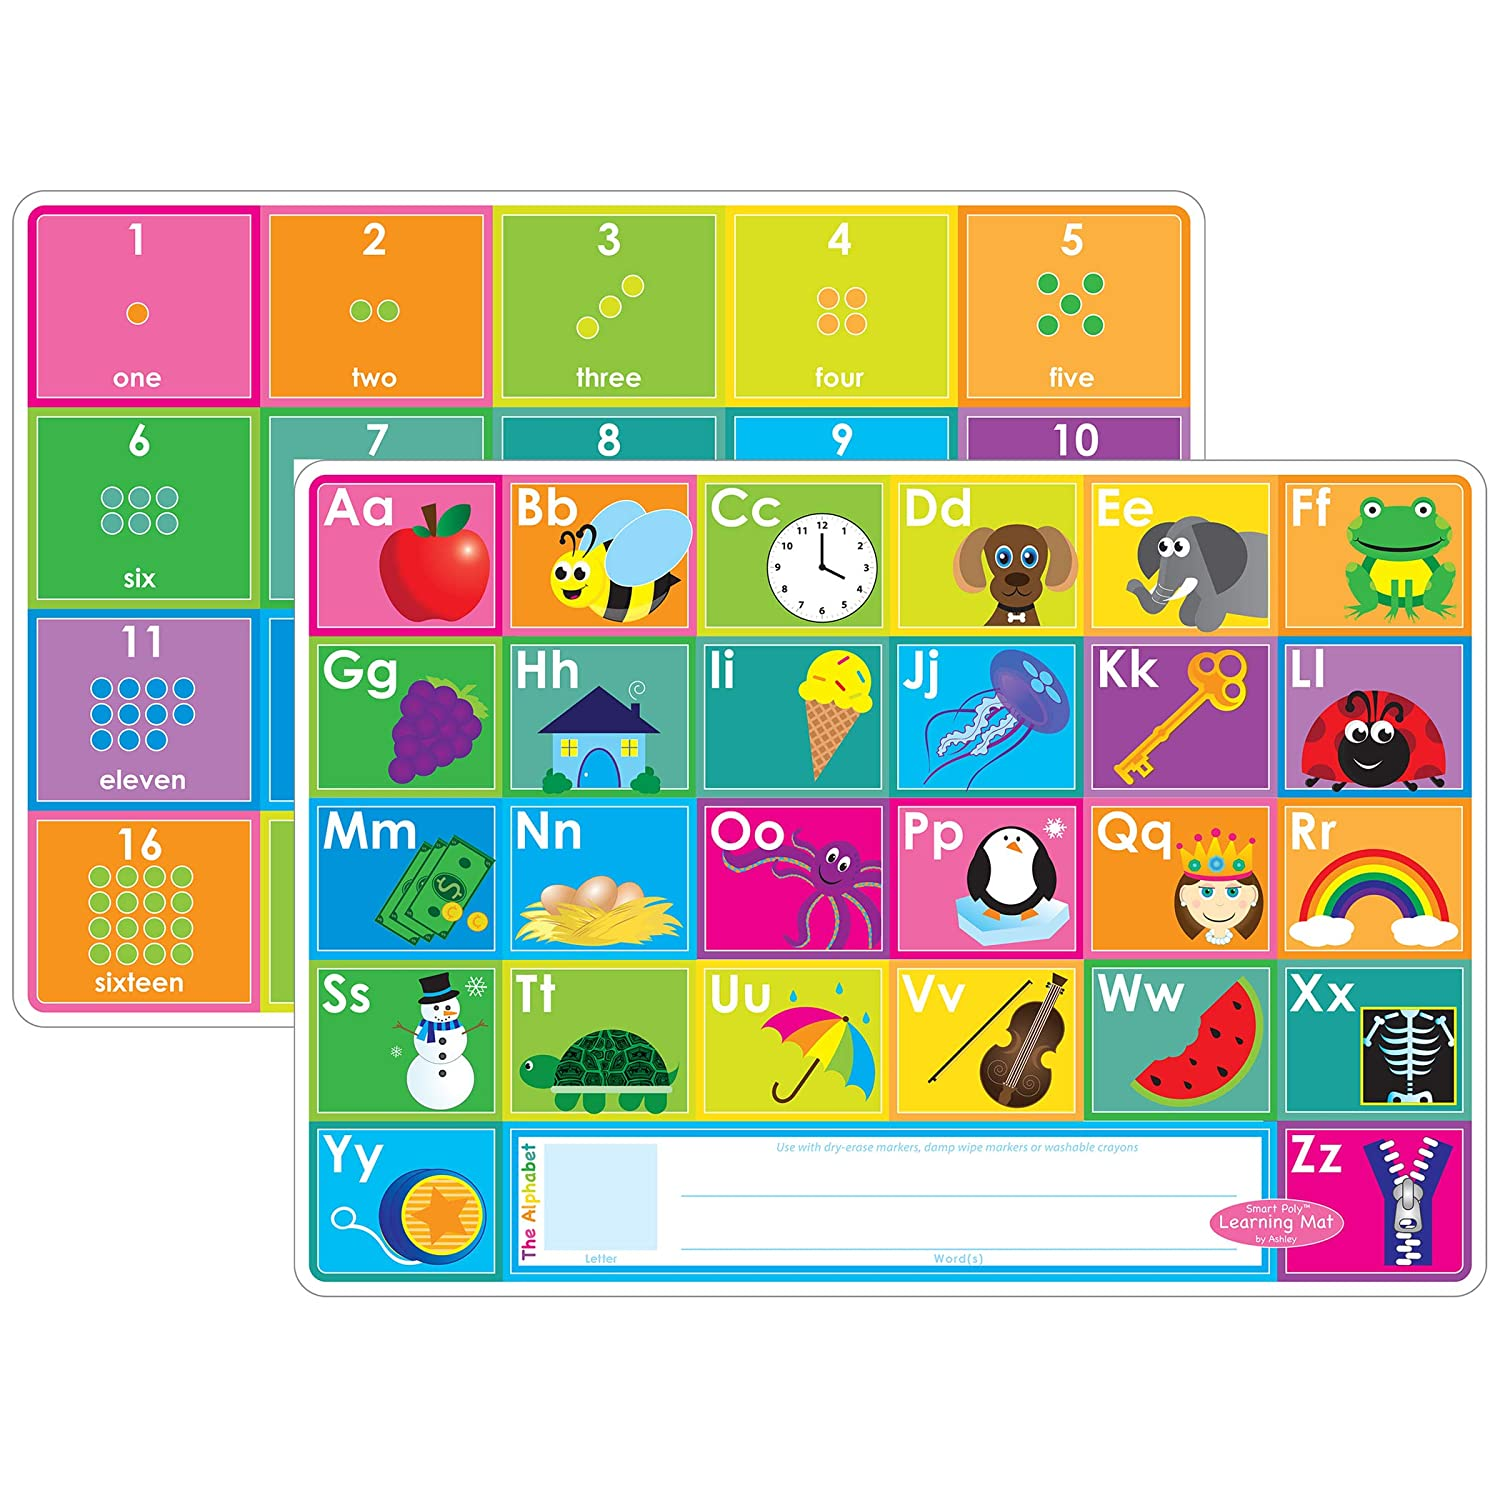 Multiplication Polypropylene //Paper PP 12 x 17 Ashley Productions ASH95006 Smart Poly Learning Mat